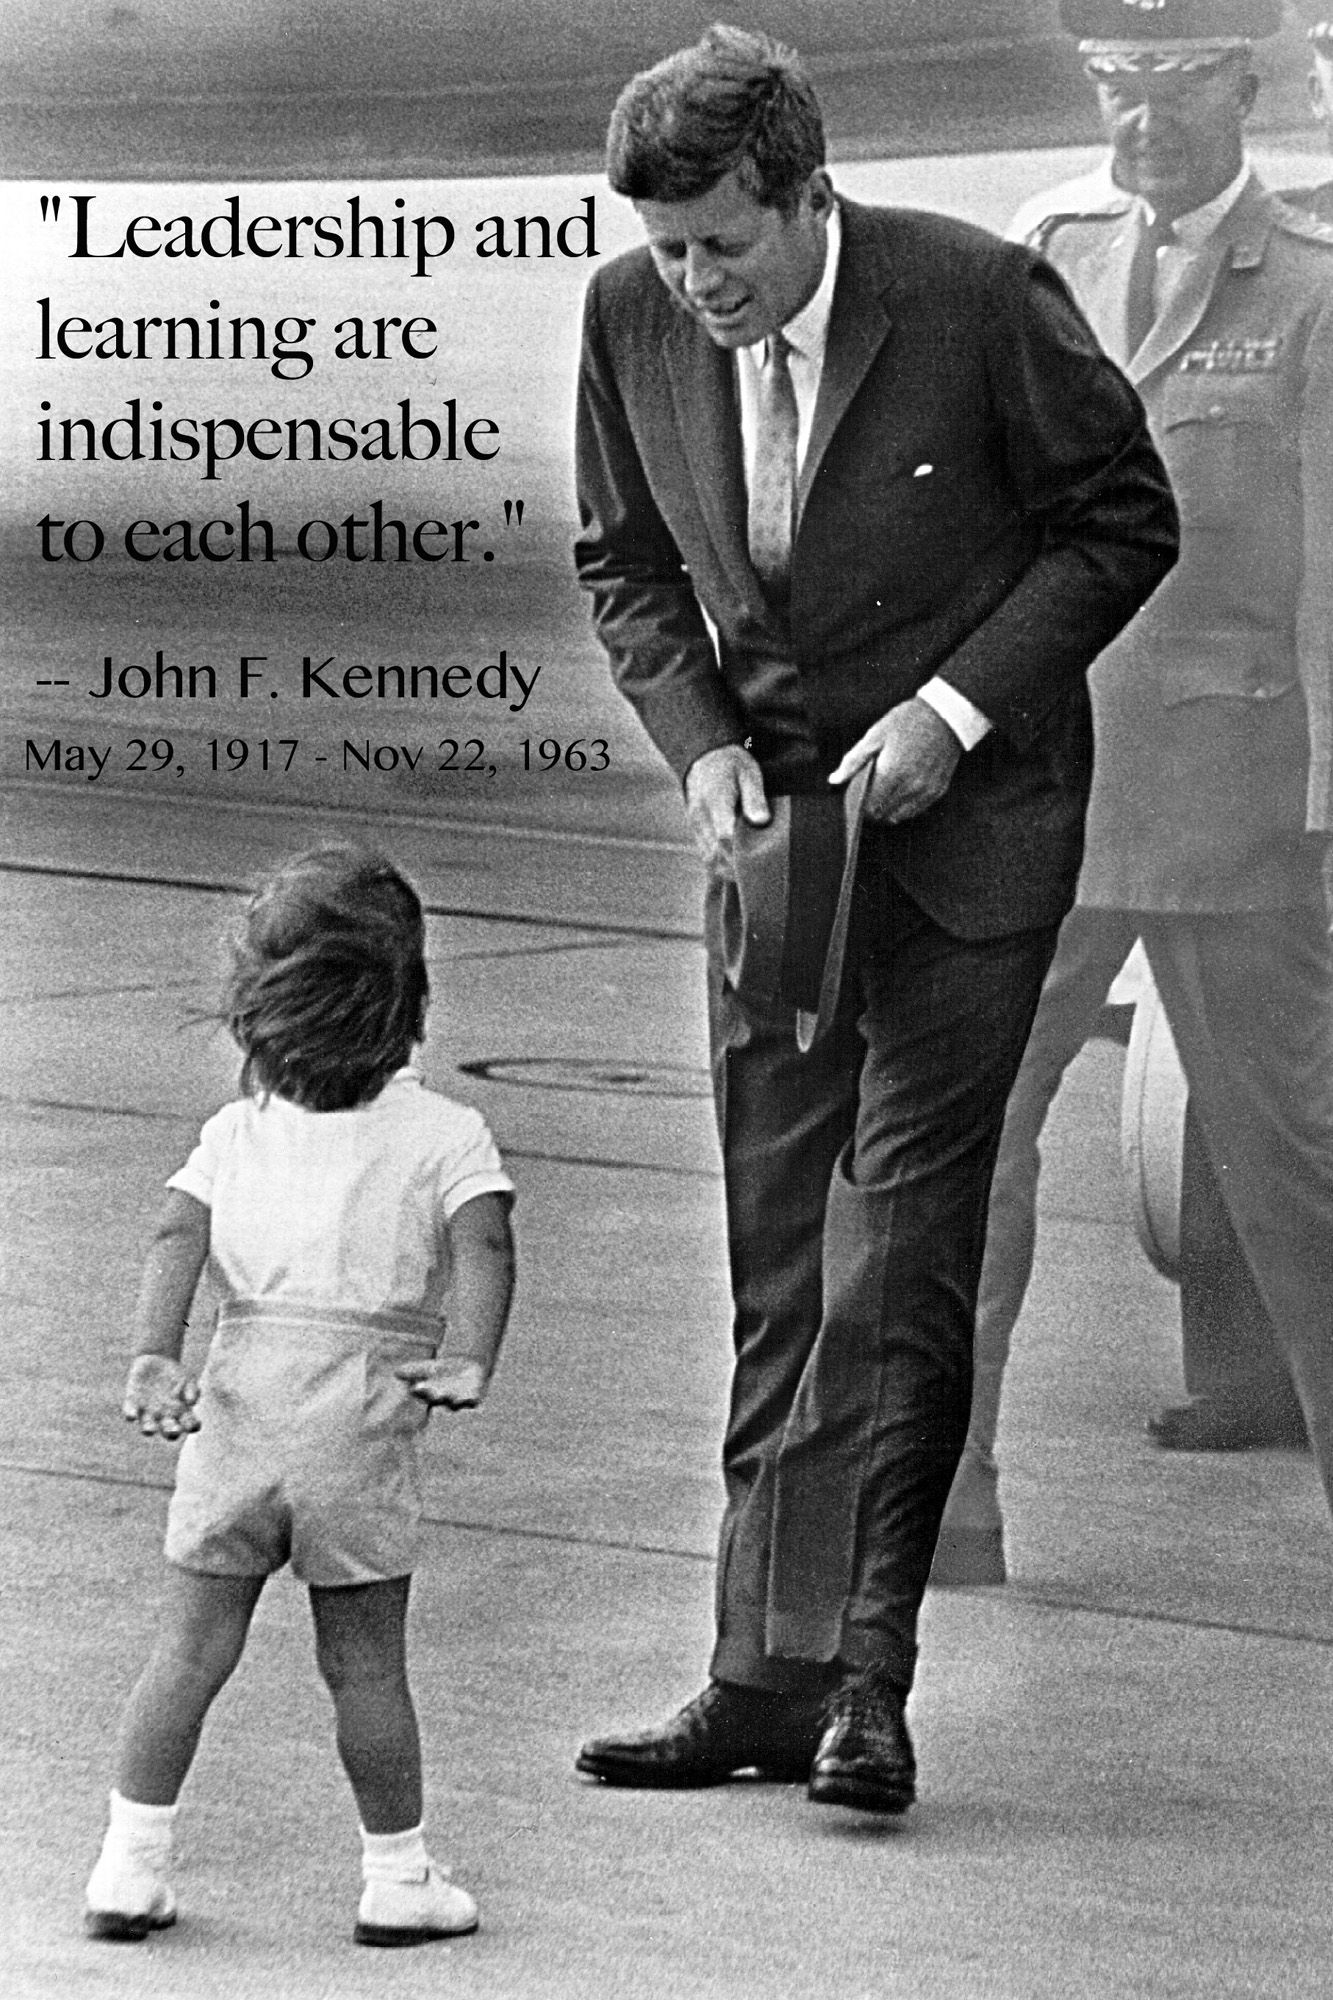 Famous quotes about learning styles quotesgram - Jfk Quote Learning And Leadership Emotional Words John F Kennedy Amazing President Of The Usa